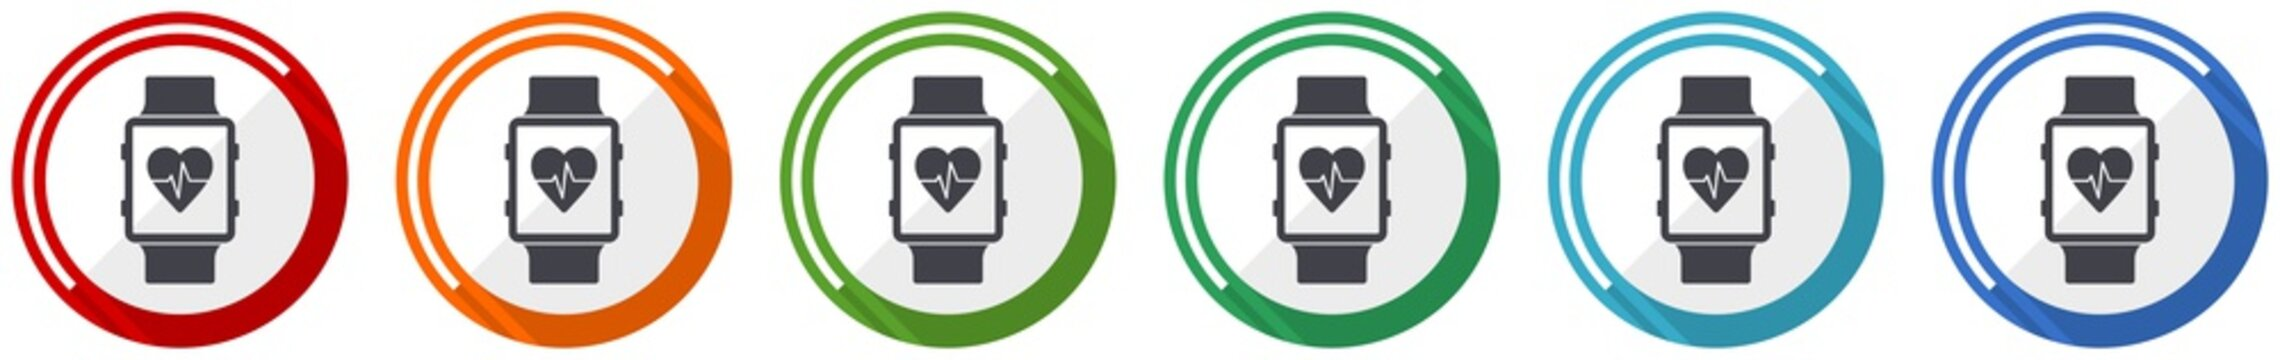 Smartwatch icon set, smart watch, fitness flat design vector illustration in 6 colors options for webdesign and mobile applications